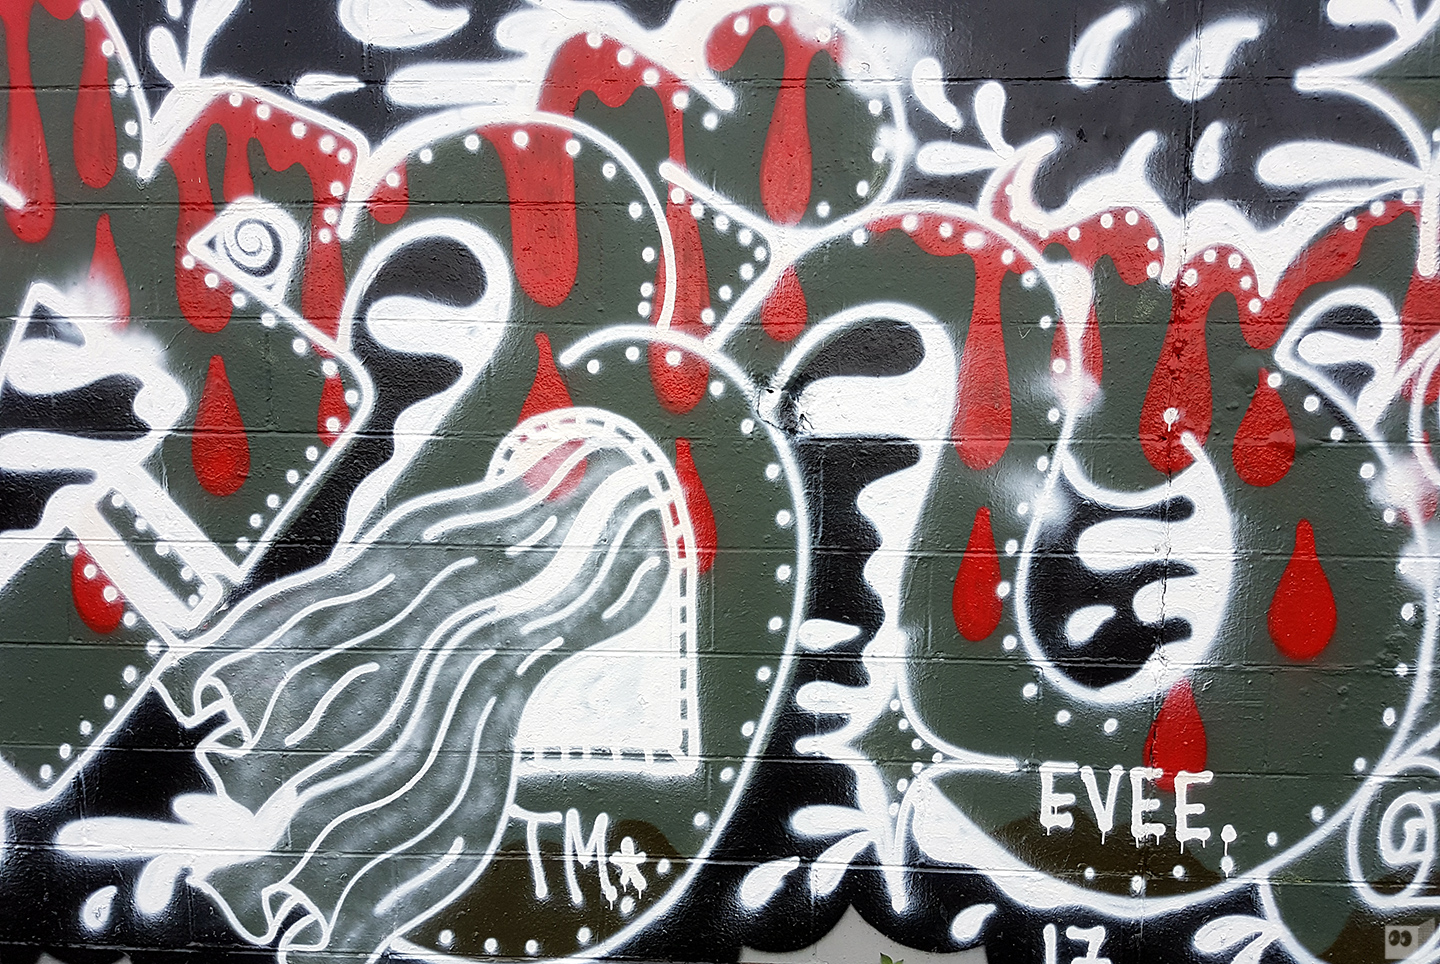 the-fourth-walls-melbourne-graffiti-bolts-renks-lazee-preston3